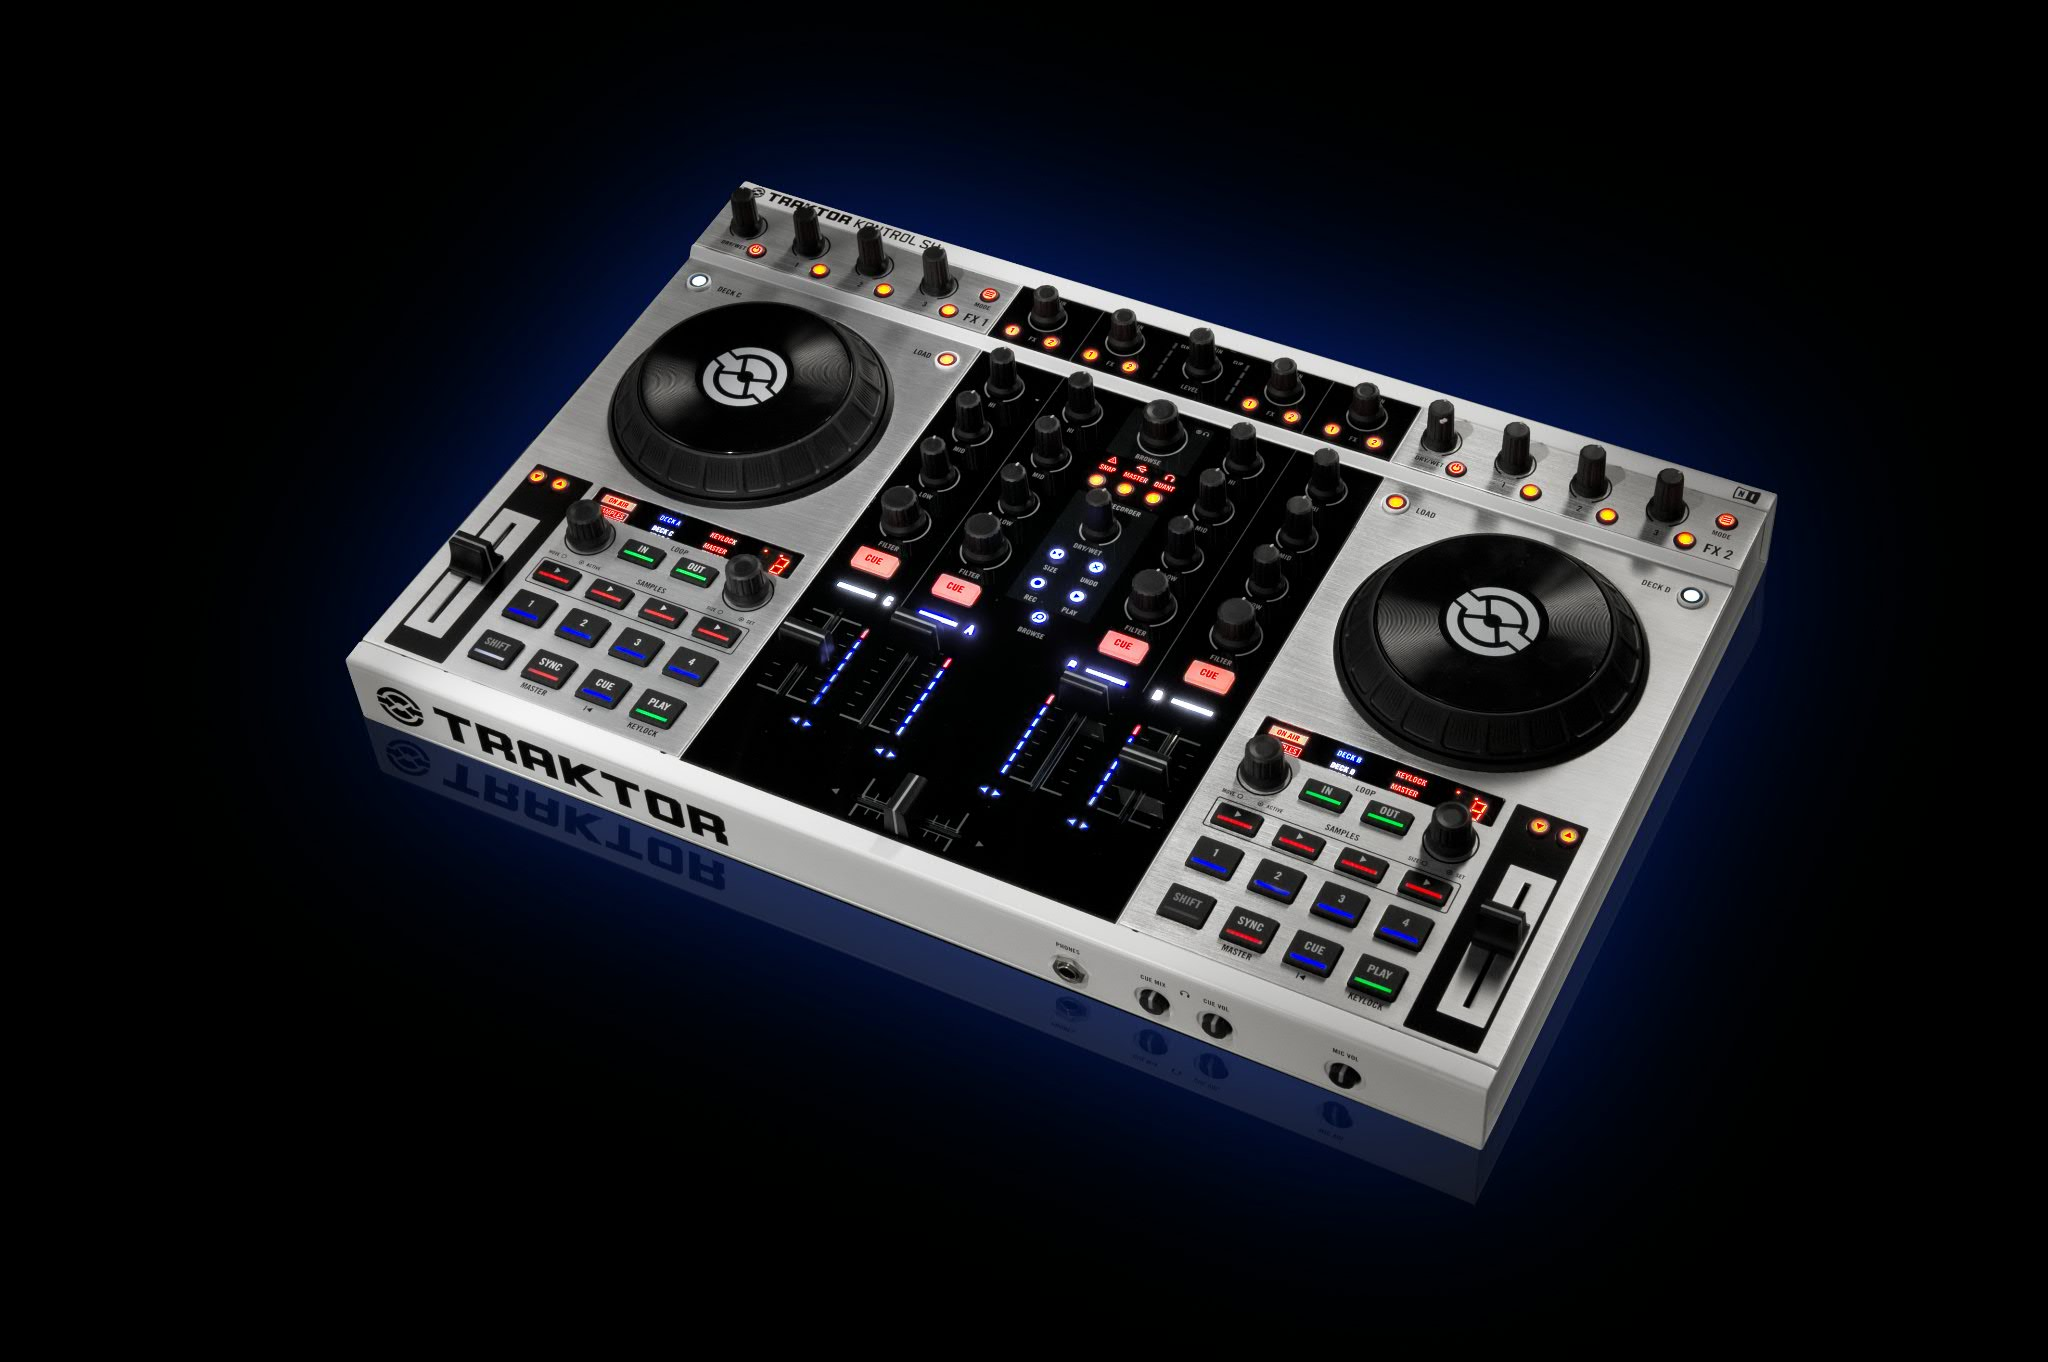 RT @Traktor: Win this custom #Traktor Kontrol S4! To be in with a chance: RT this and follow us! Random winner picked 31.08.12! http://t ...